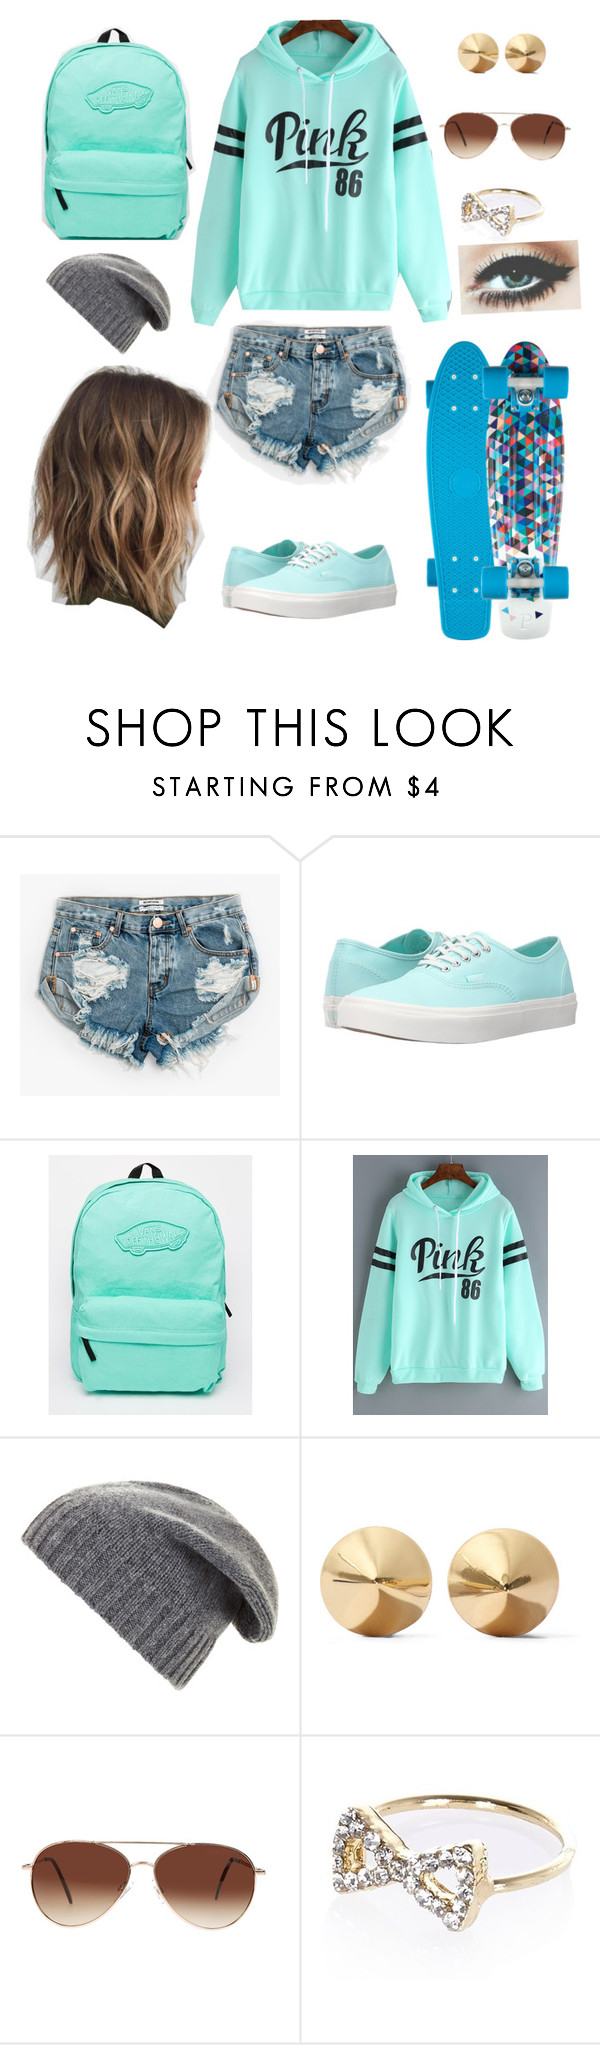 """Let's Go Boardin"" by laurenbrgr ❤ liked on Polyvore featuring One Teaspoon, Vans, BCBGMAXAZRIA, Eddie Borgo, Eloquii and River Island"